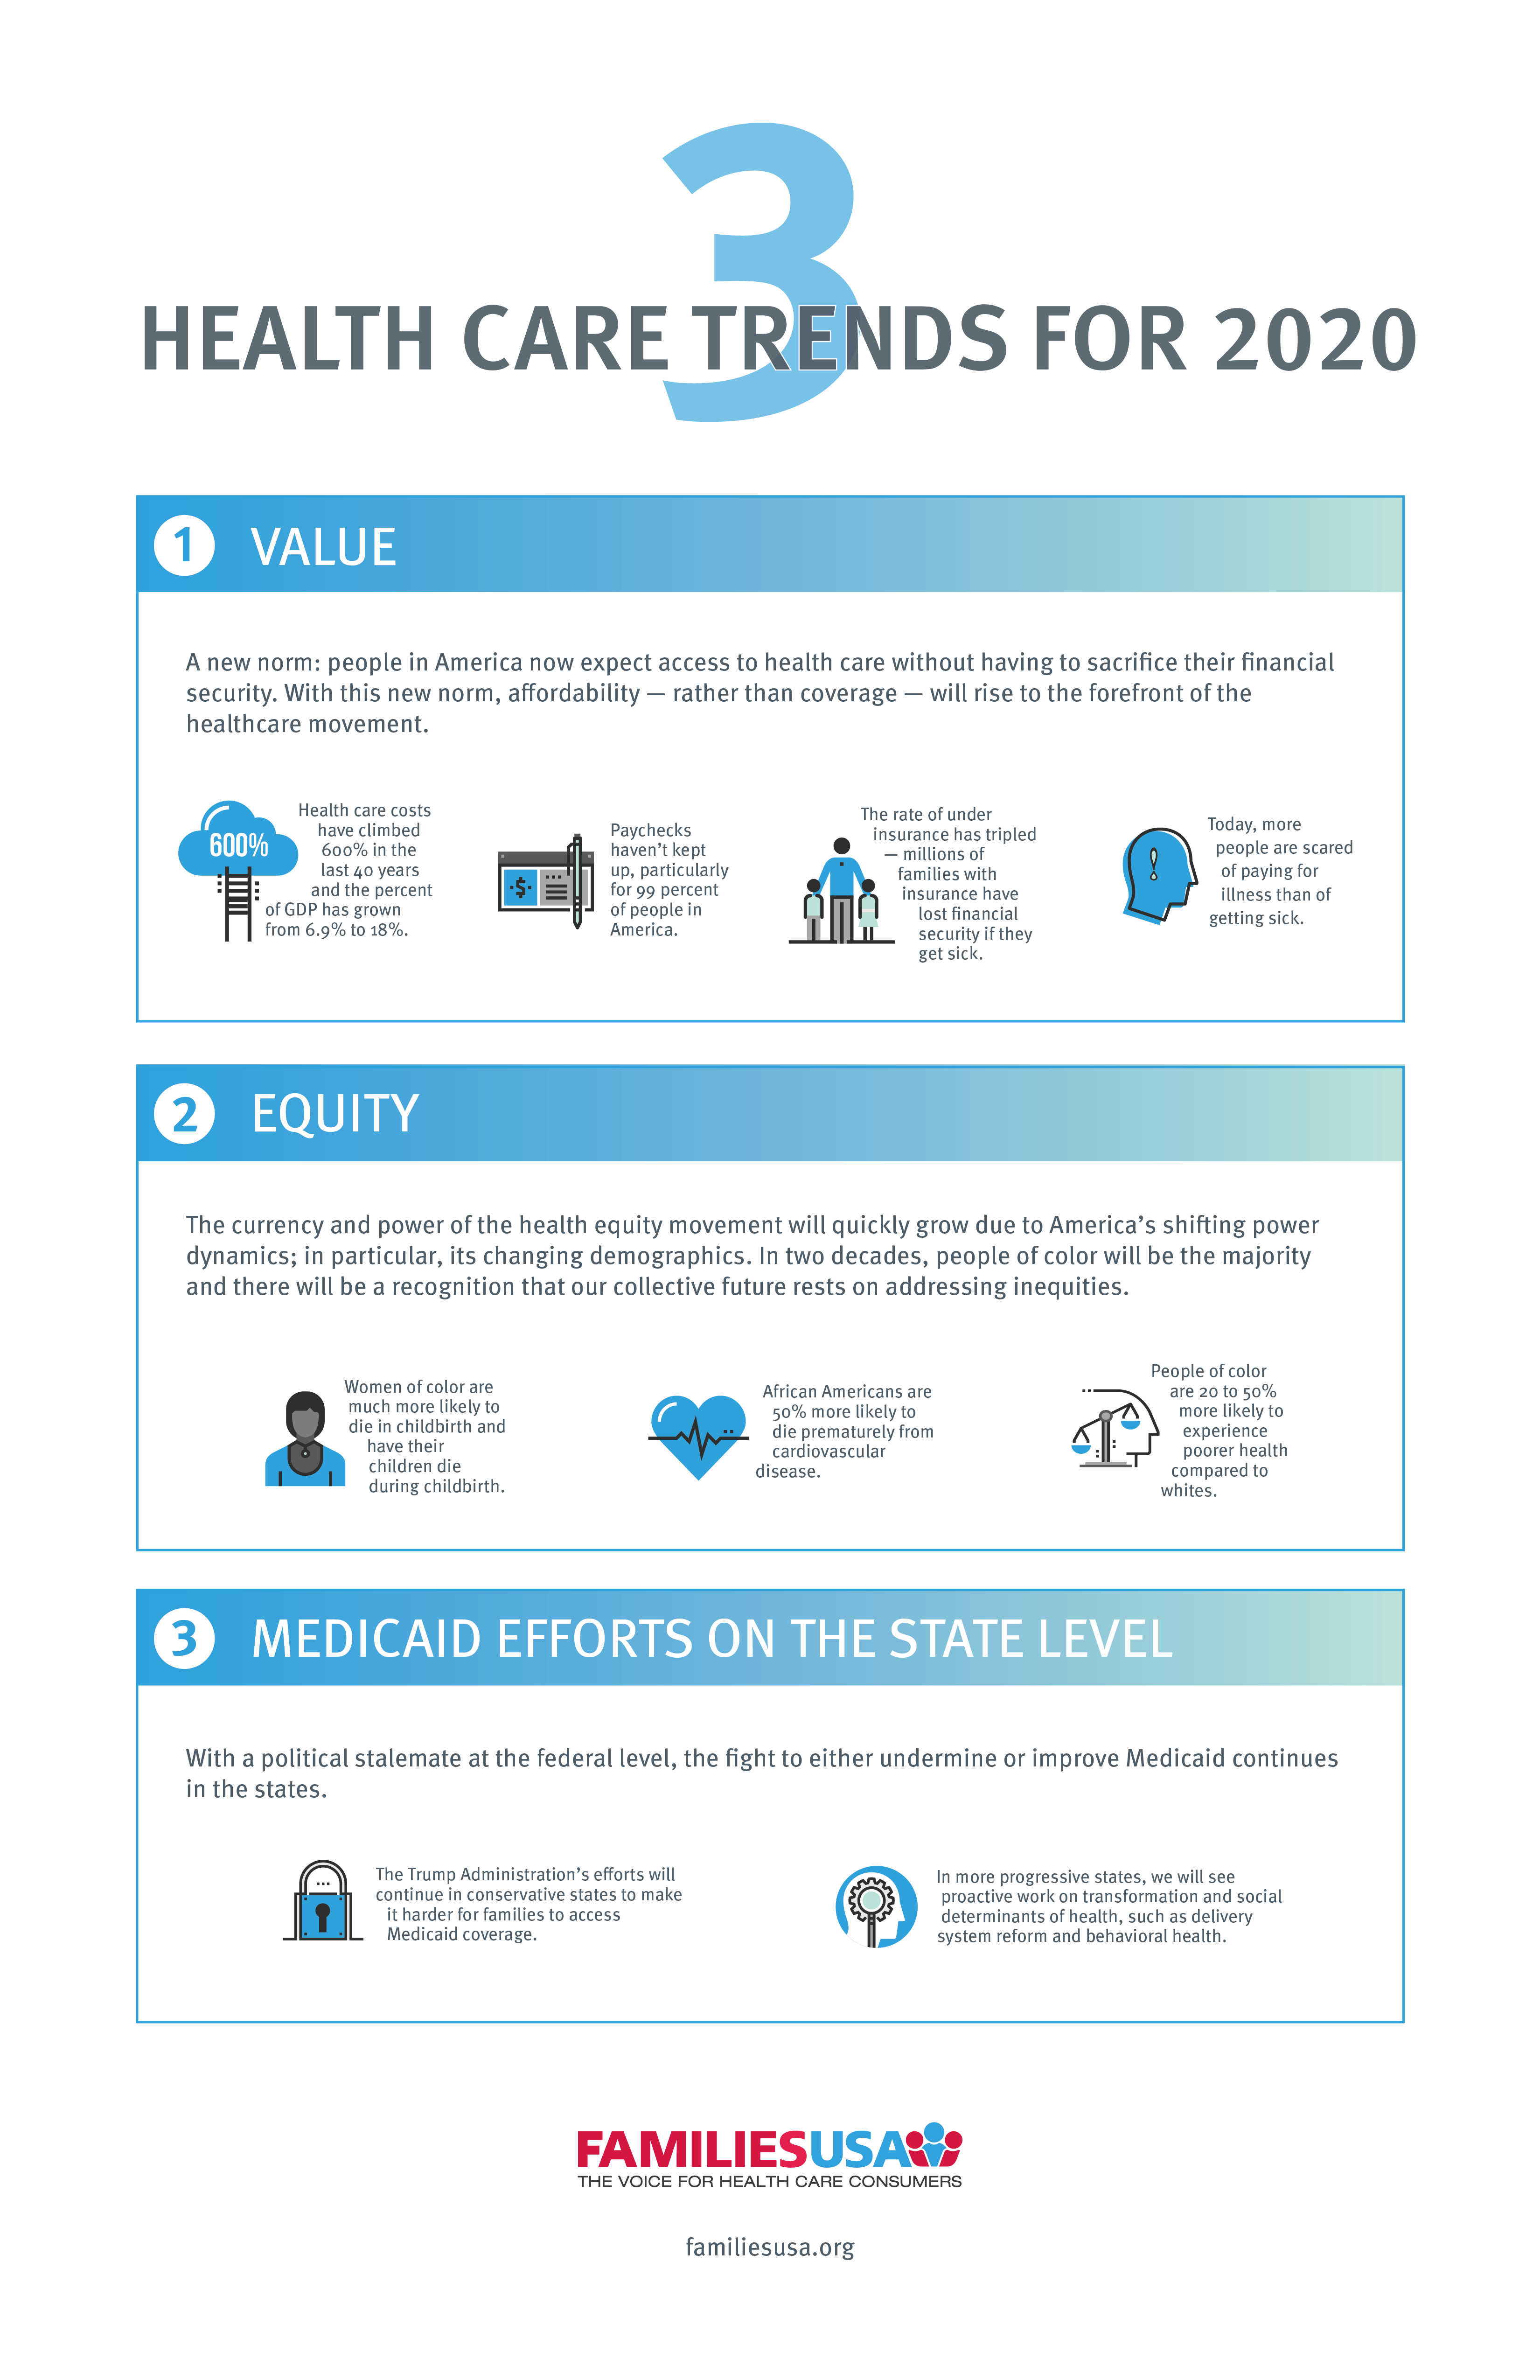 https://familiesusa.org/wp-content/uploads/2020/02/3-Health-Care-Trends-2020-Infographic.png